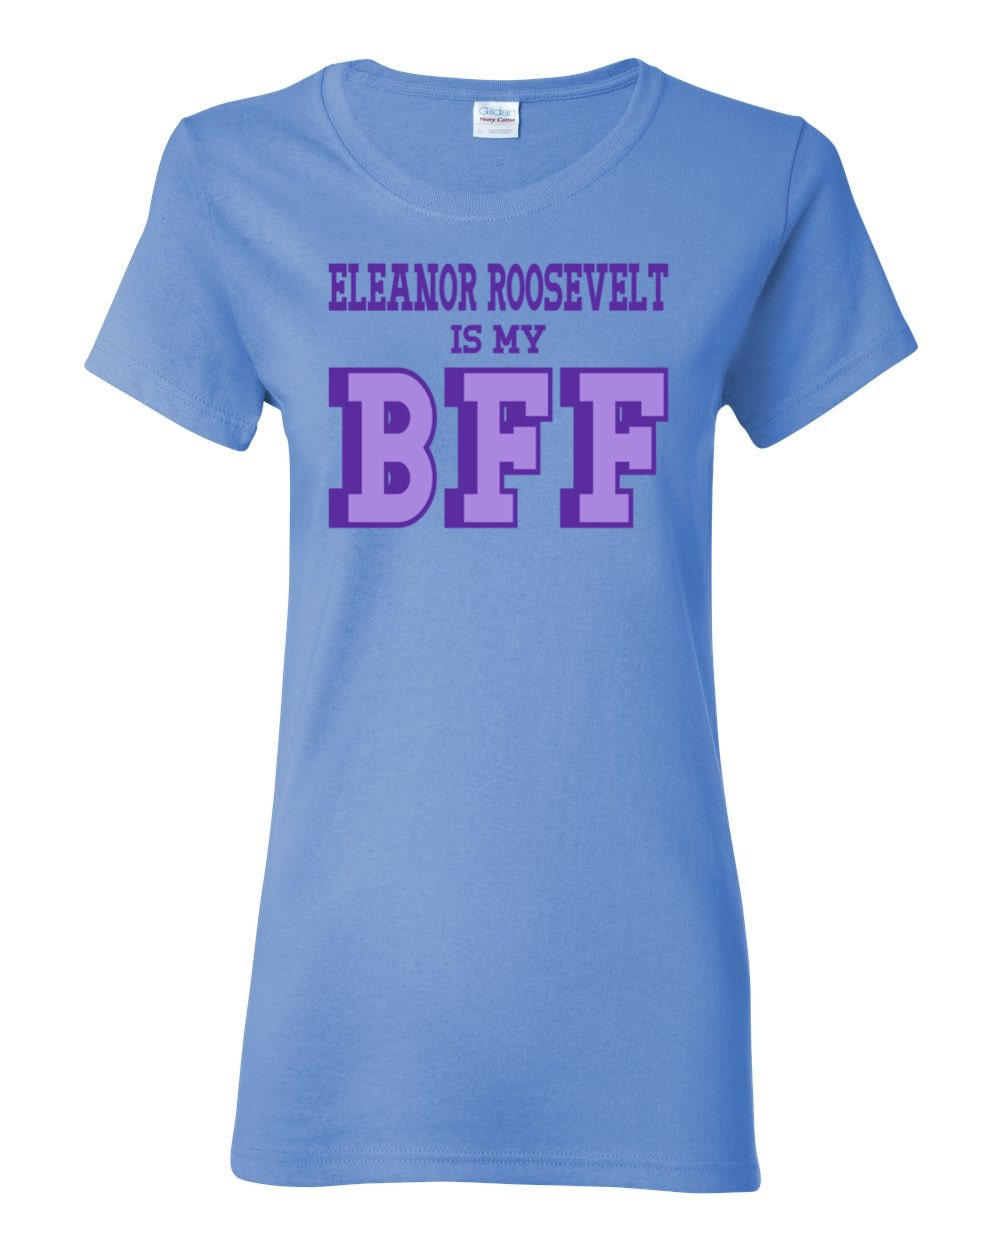 Great Women of History - Eleanor Roosevelt is my BFF Womens History T-shirt